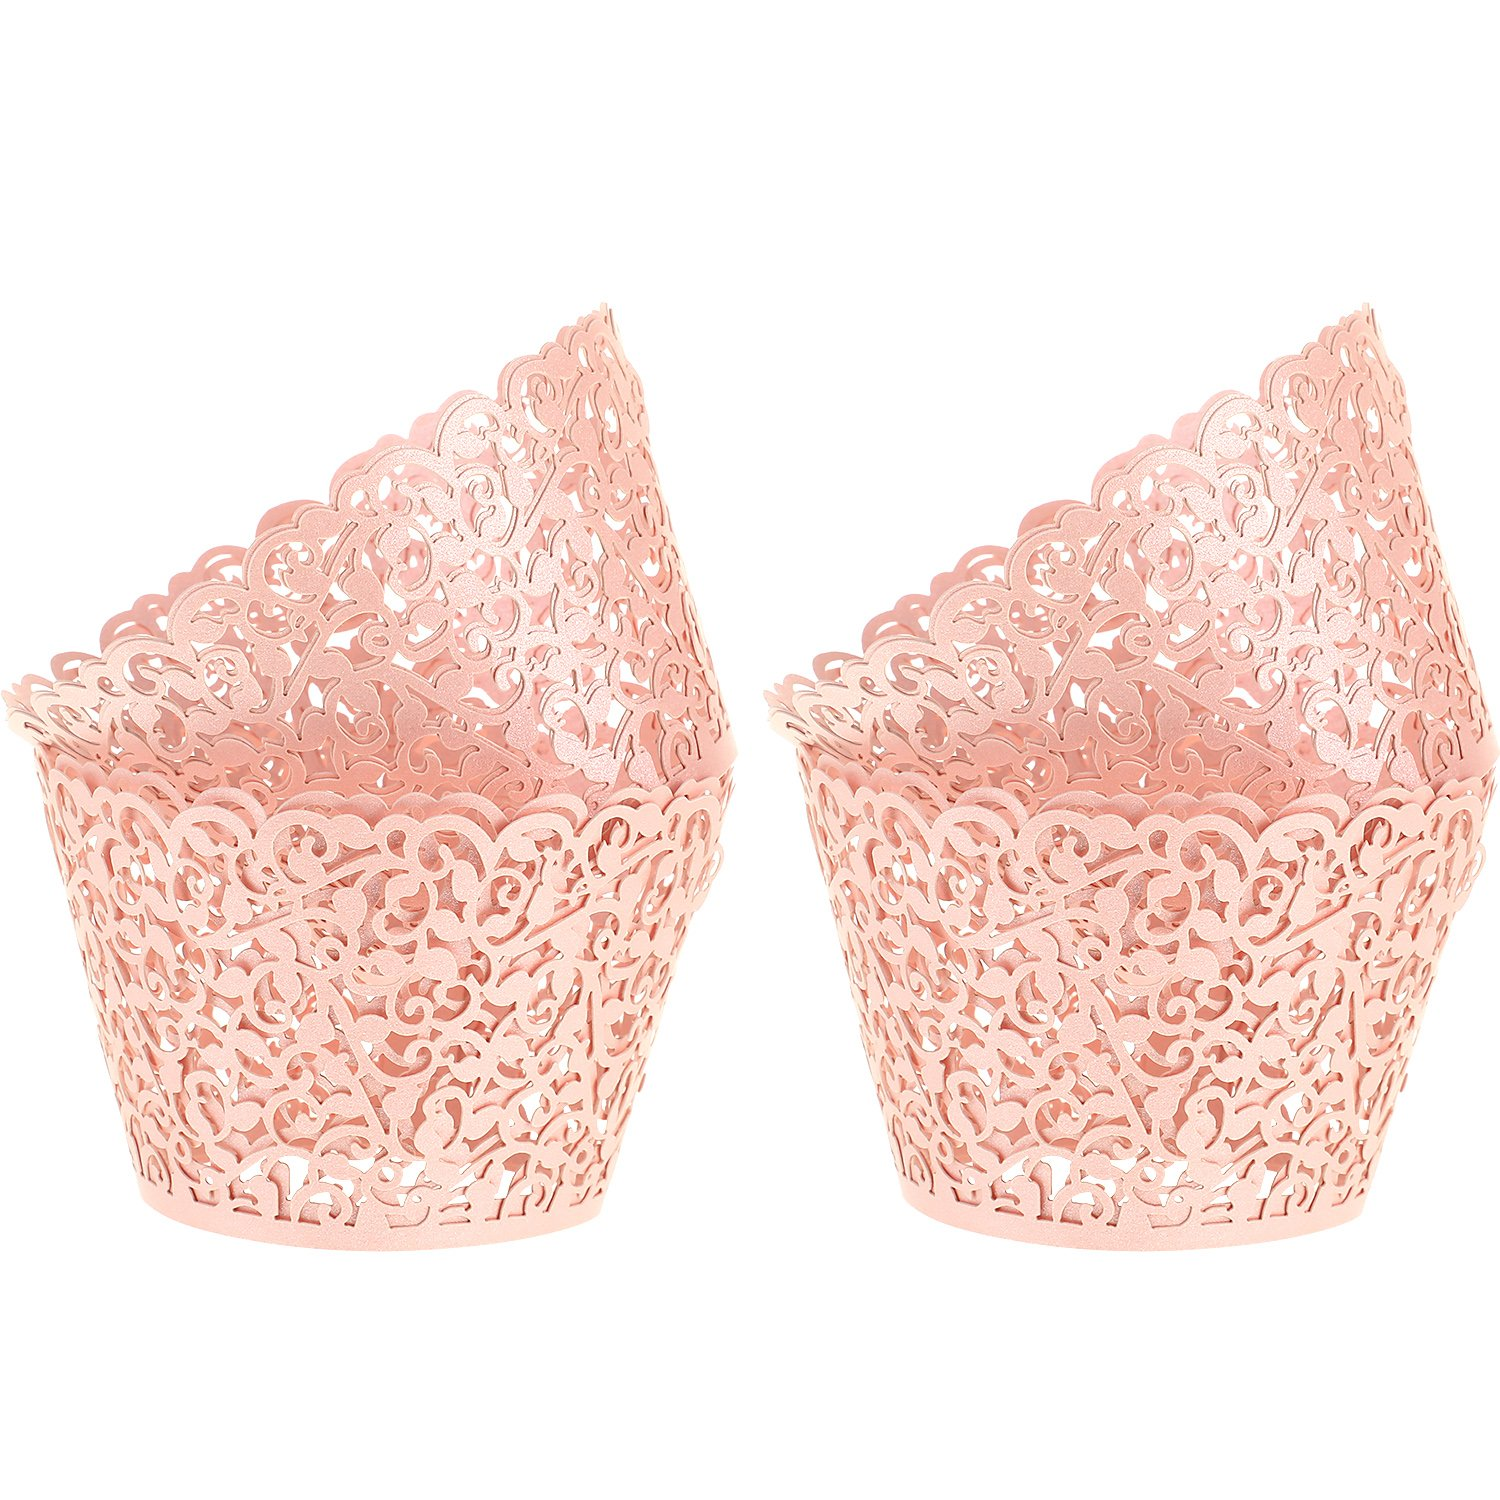 Leinuosen 150 Pieces Cupcake Wrappers Filigree Vine Cupcake Wraps Lace Cupcake Liners for Wedding Birthday Baby Shower Parties Decoration (Pink)